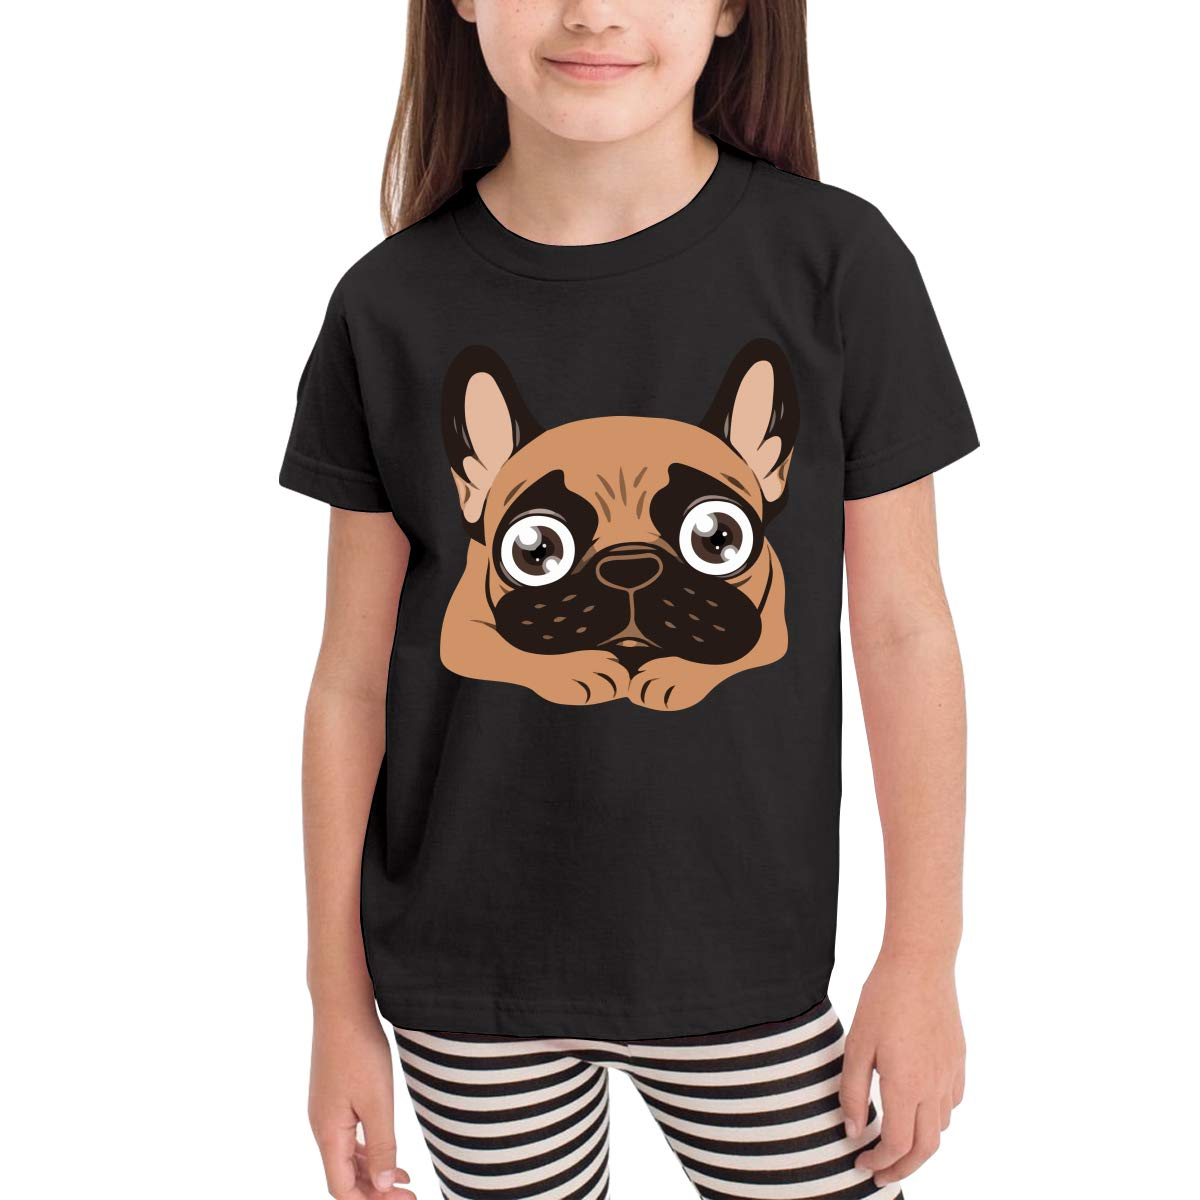 Black Mask Fawn Frenchie Kids Cotton T-Shirt Basic Soft Short Sleeve Tee Tops for Baby Boys Girls